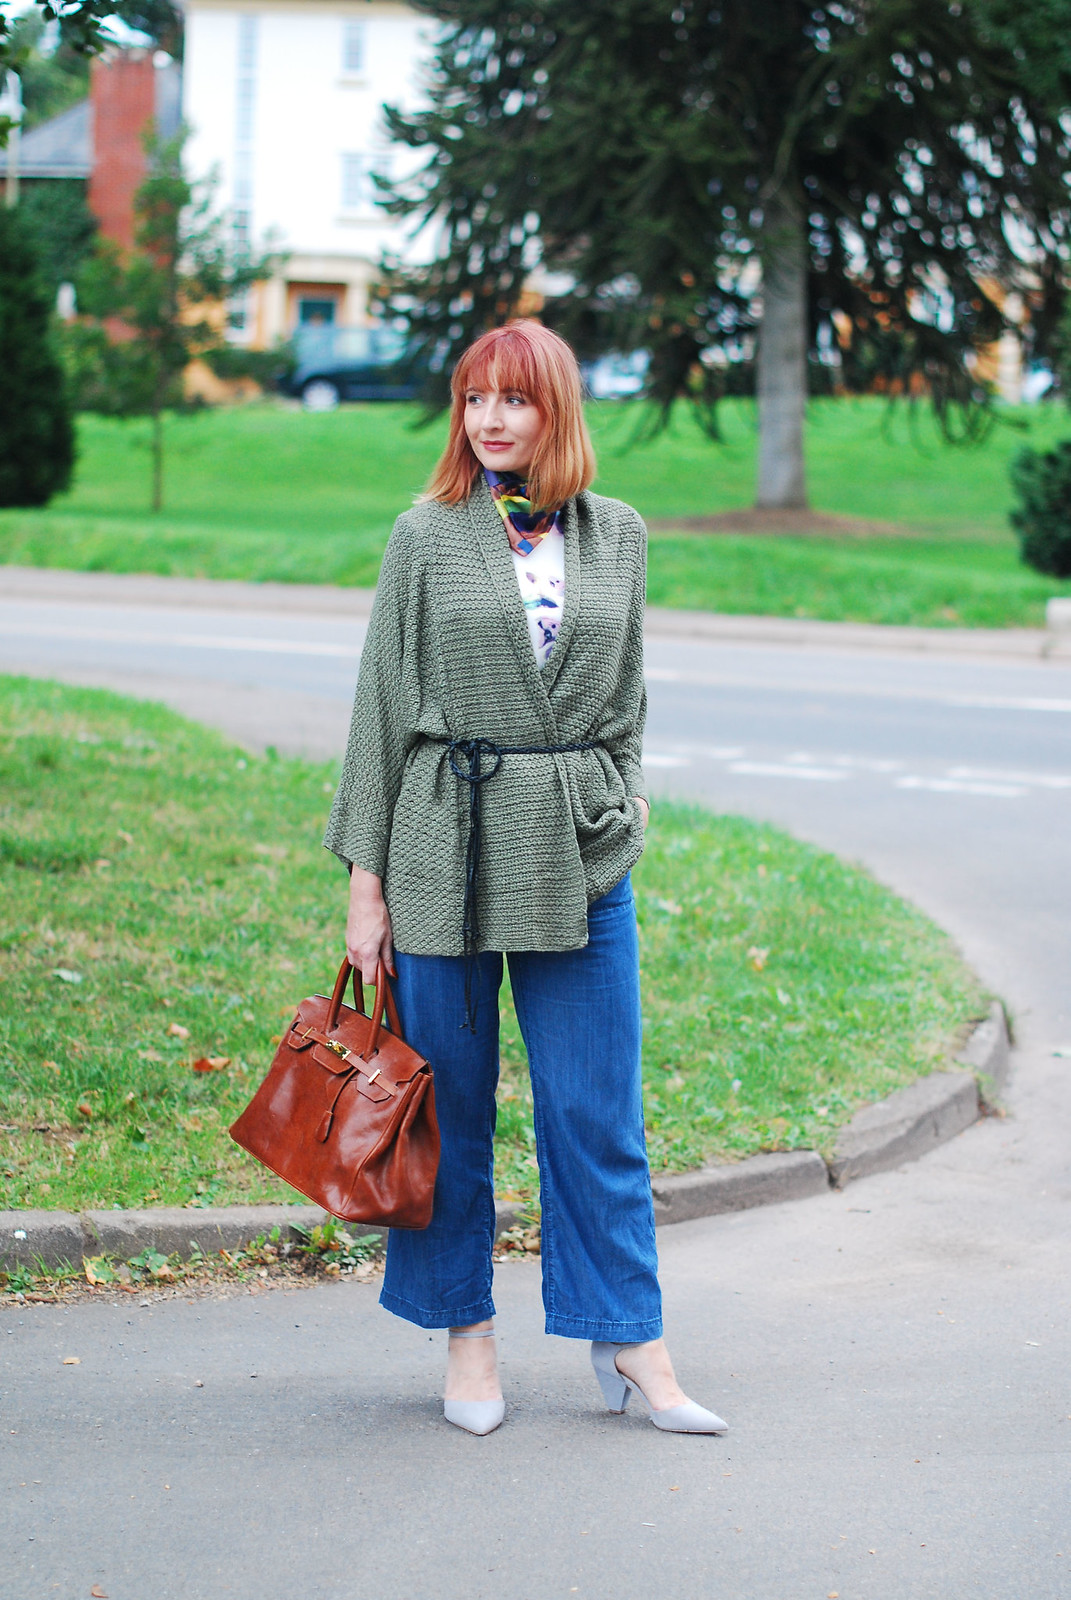 How to style cropped wide leg jeans for autumn (fall) - olive cardigan - Birkin-style bag - coloured neck scarf | Not Dressed As Lamb, style over 40